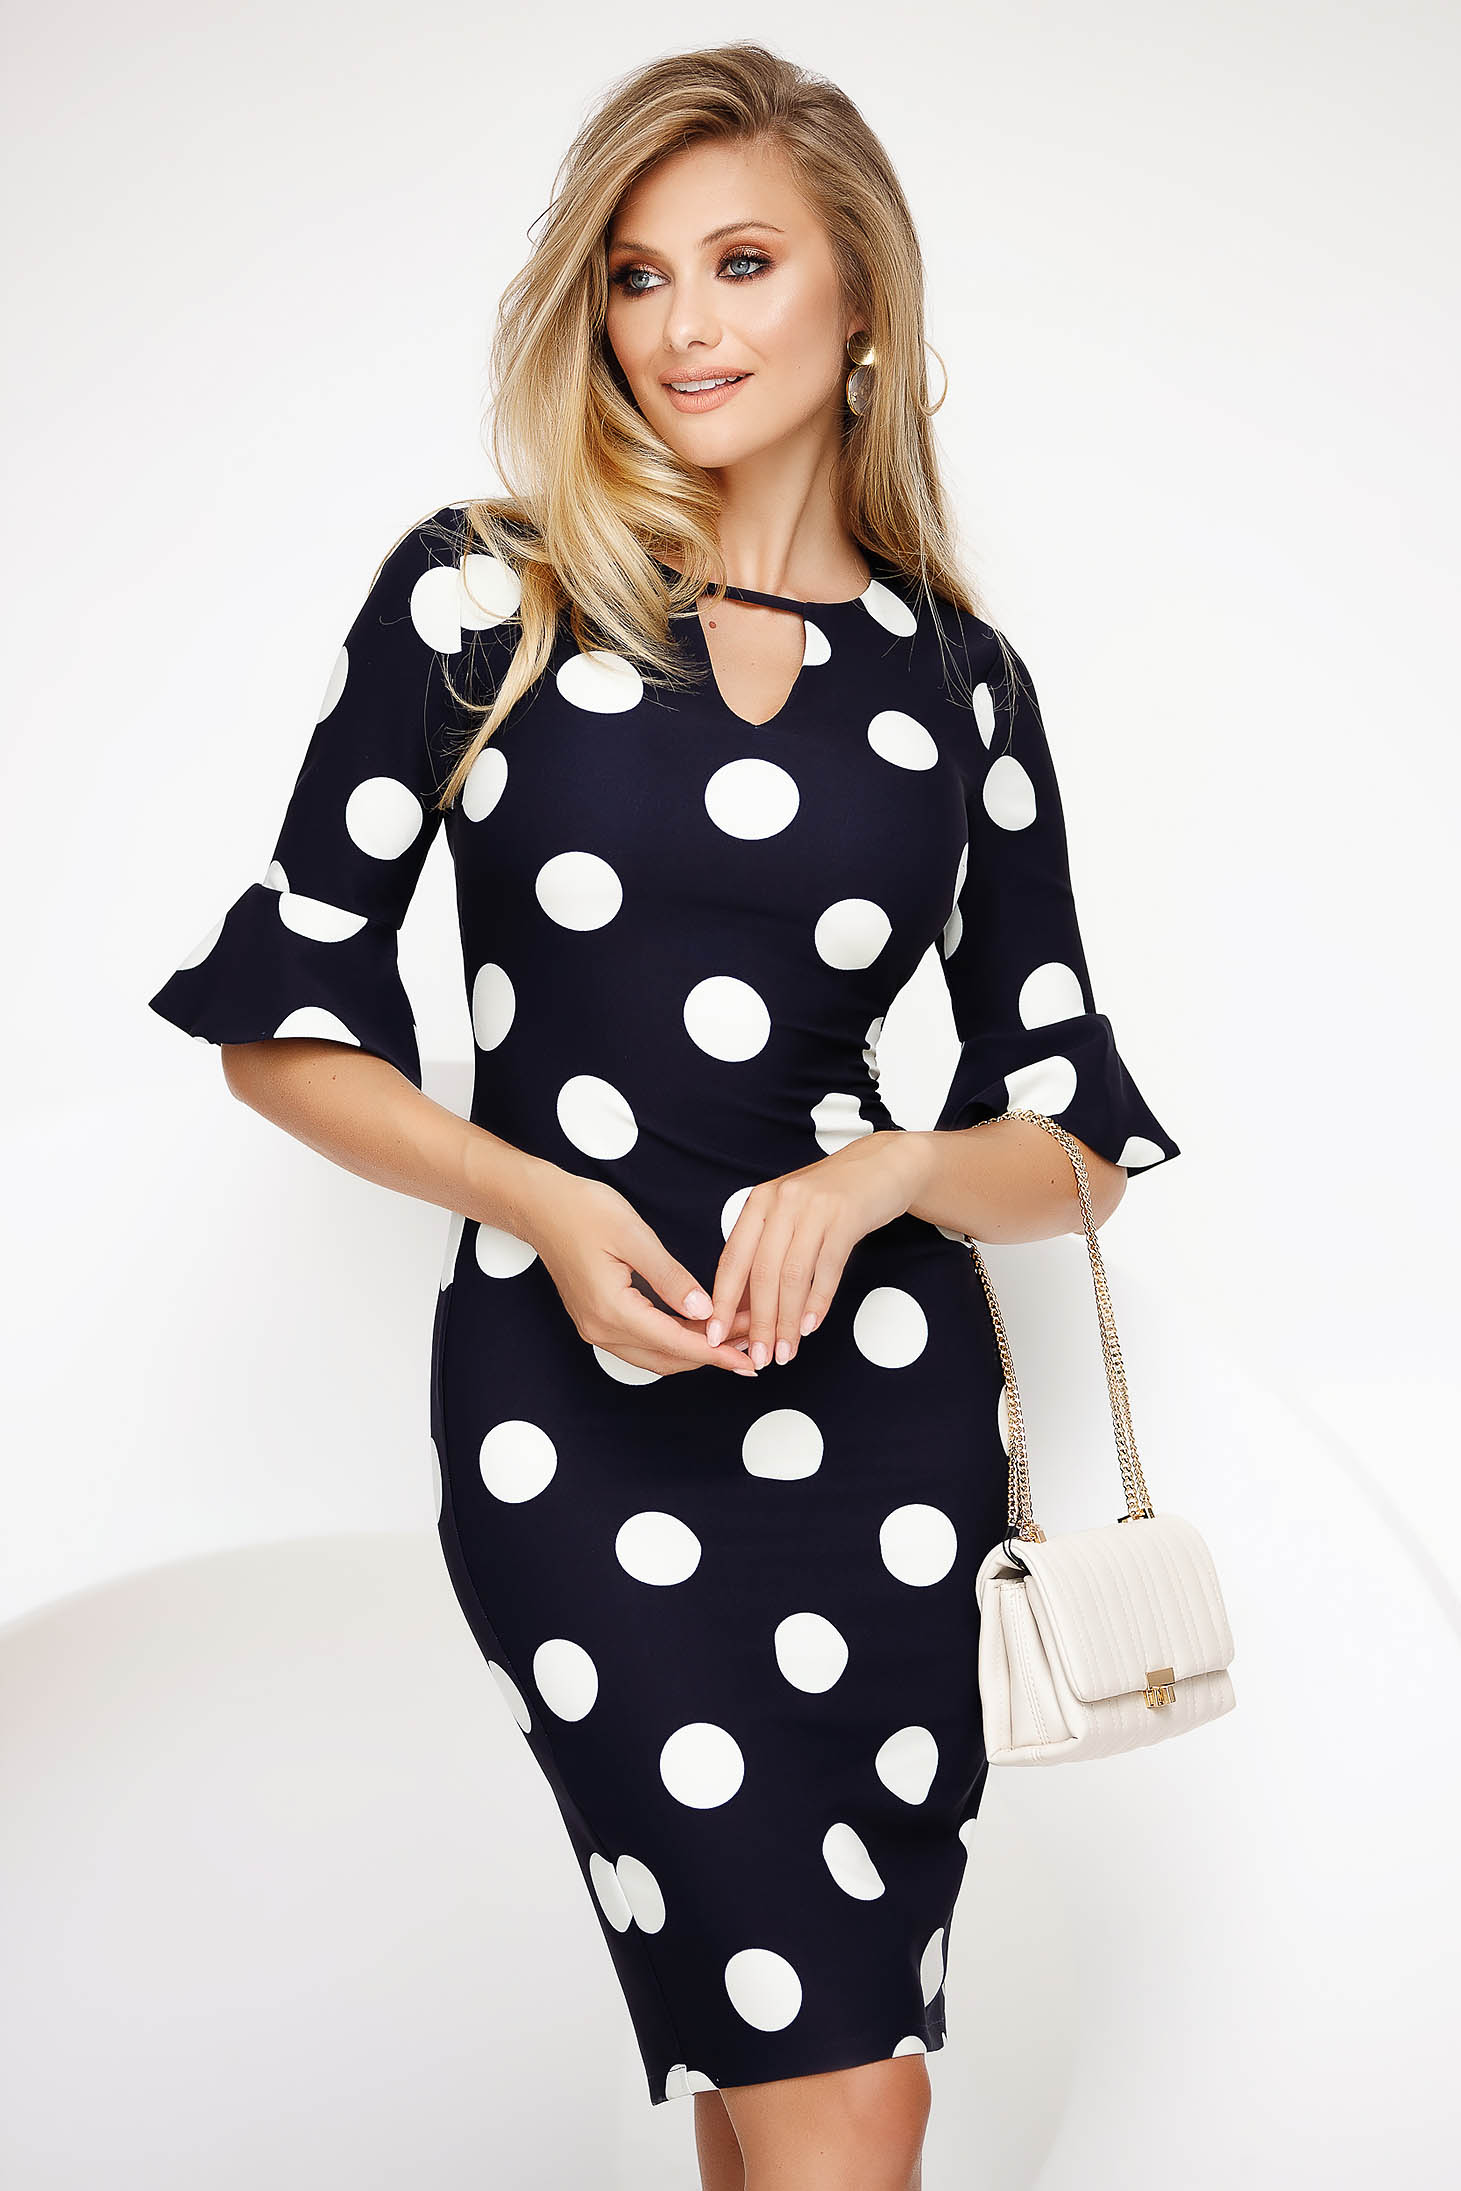 White office pencil dress cloth thin fabric with bell sleeve